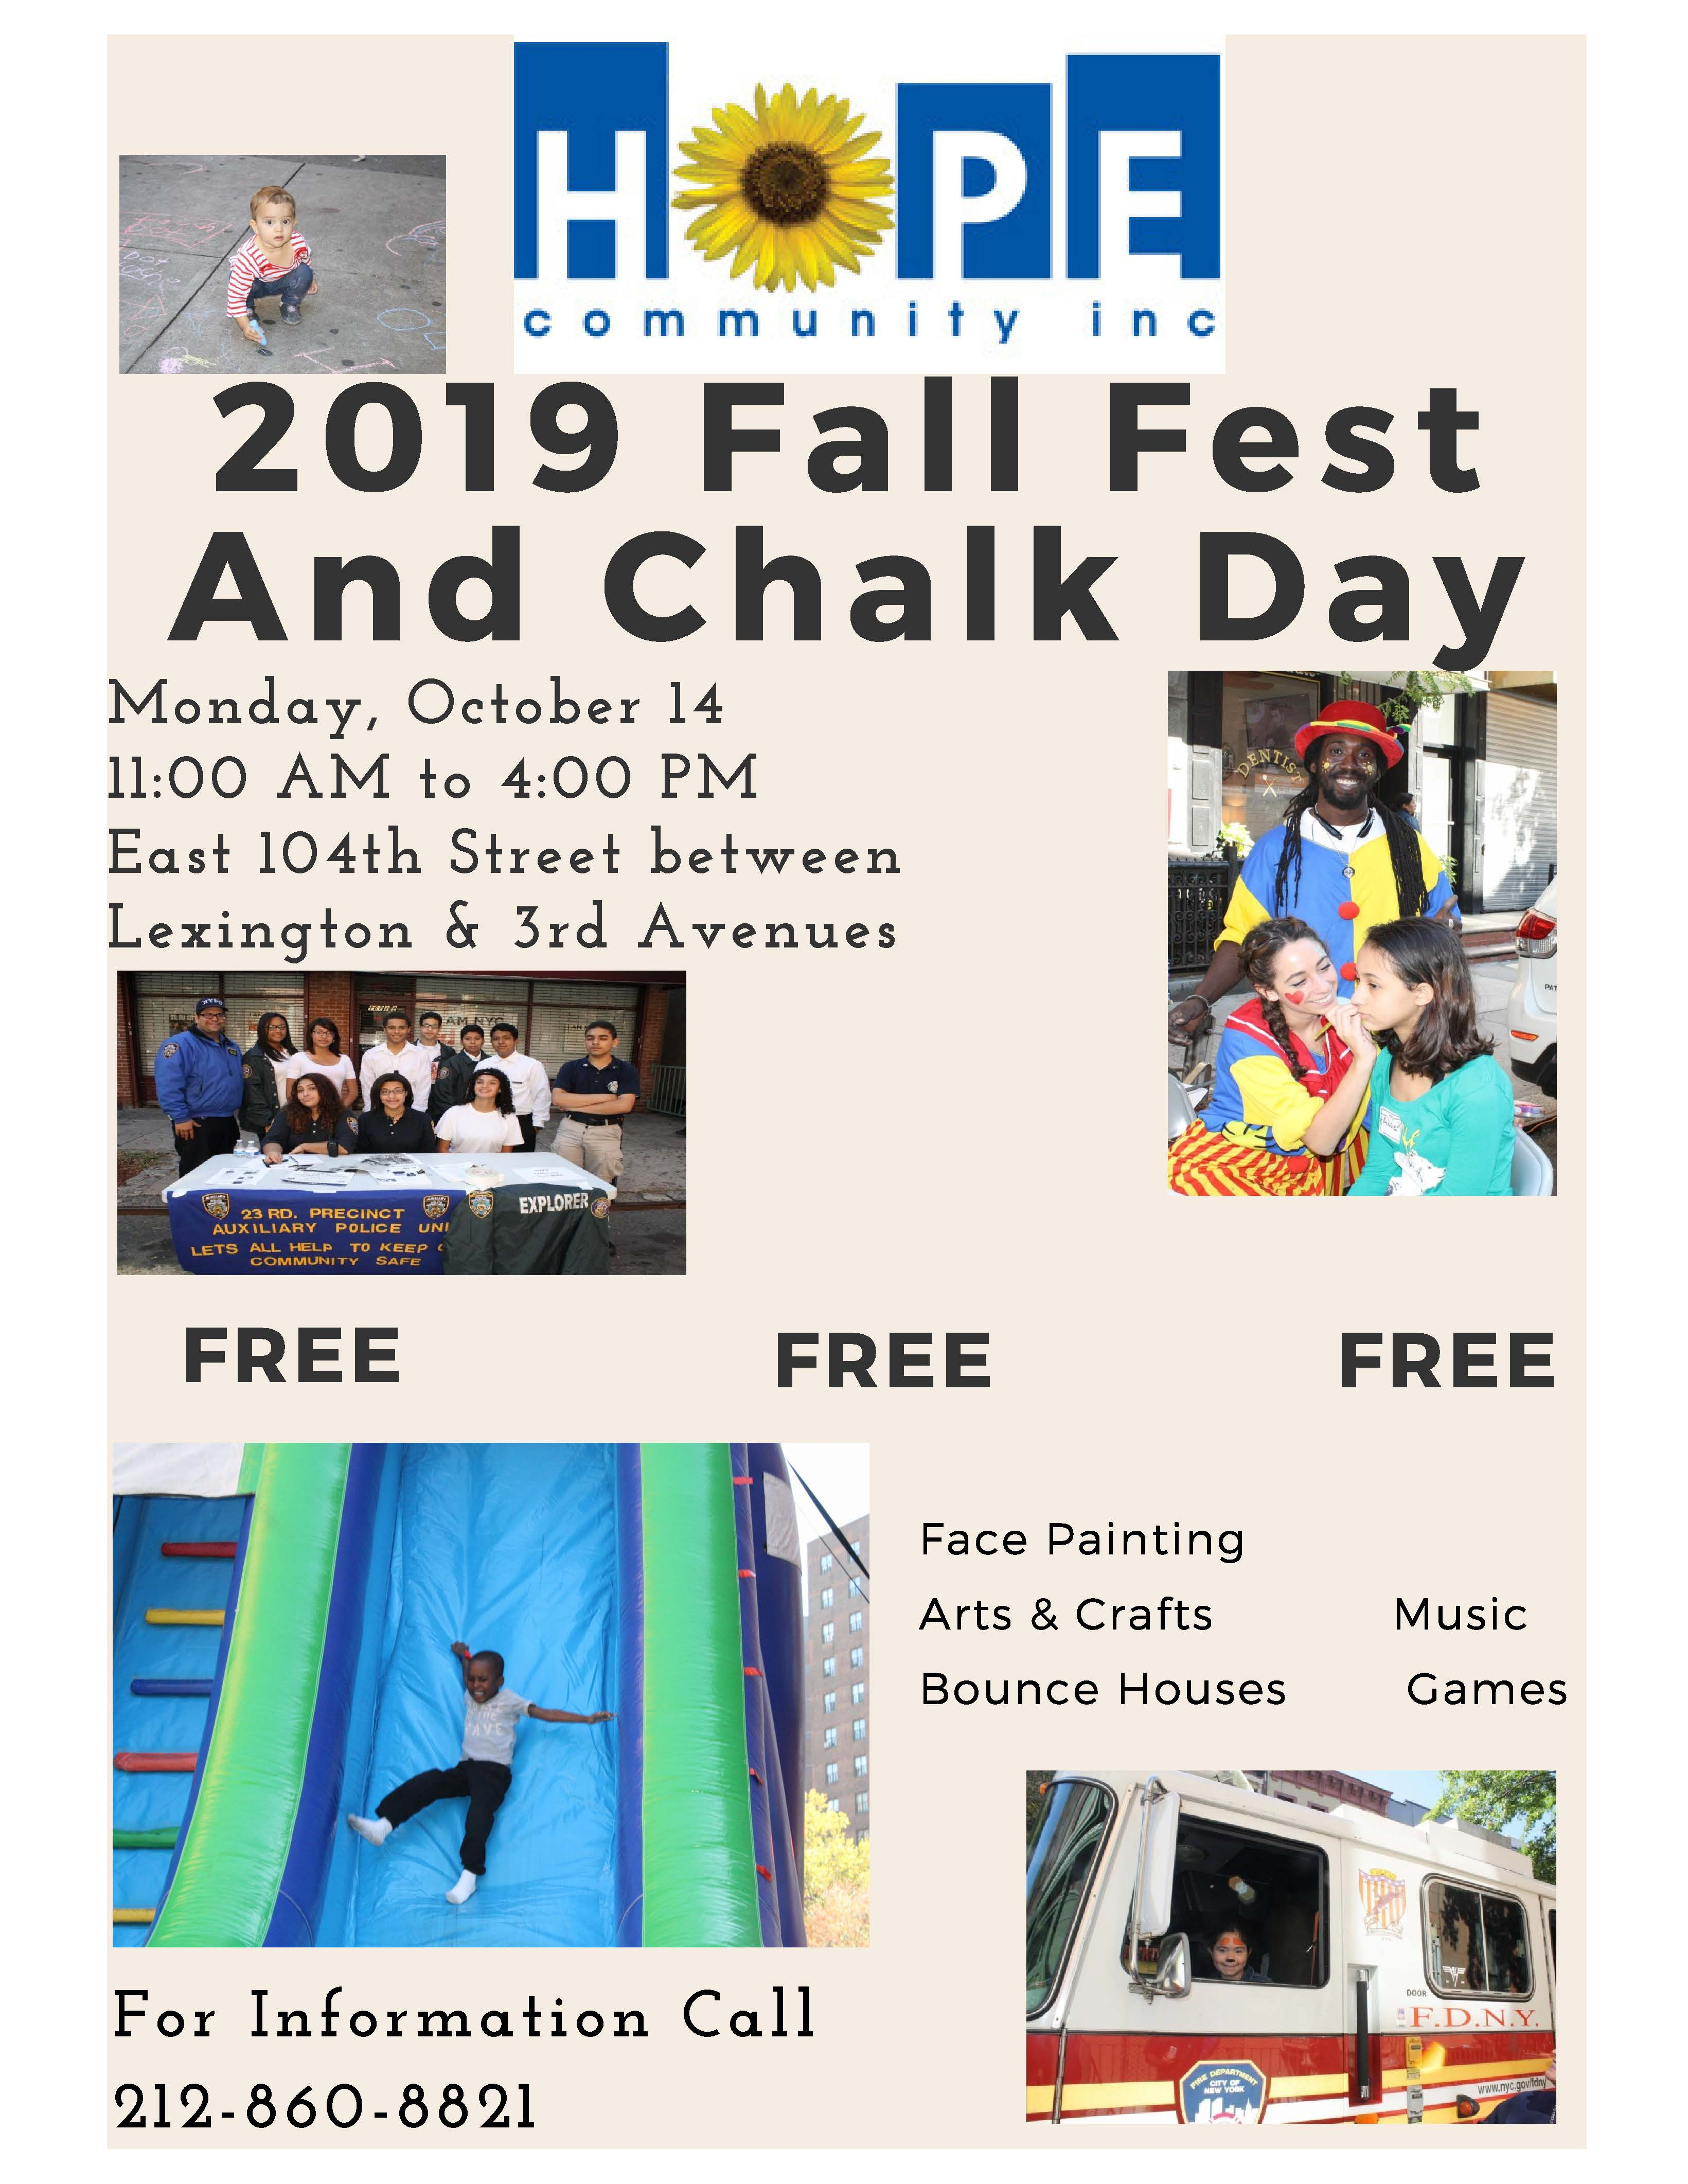 Fall Fest 2019 Eng & Span (1)_Page_1